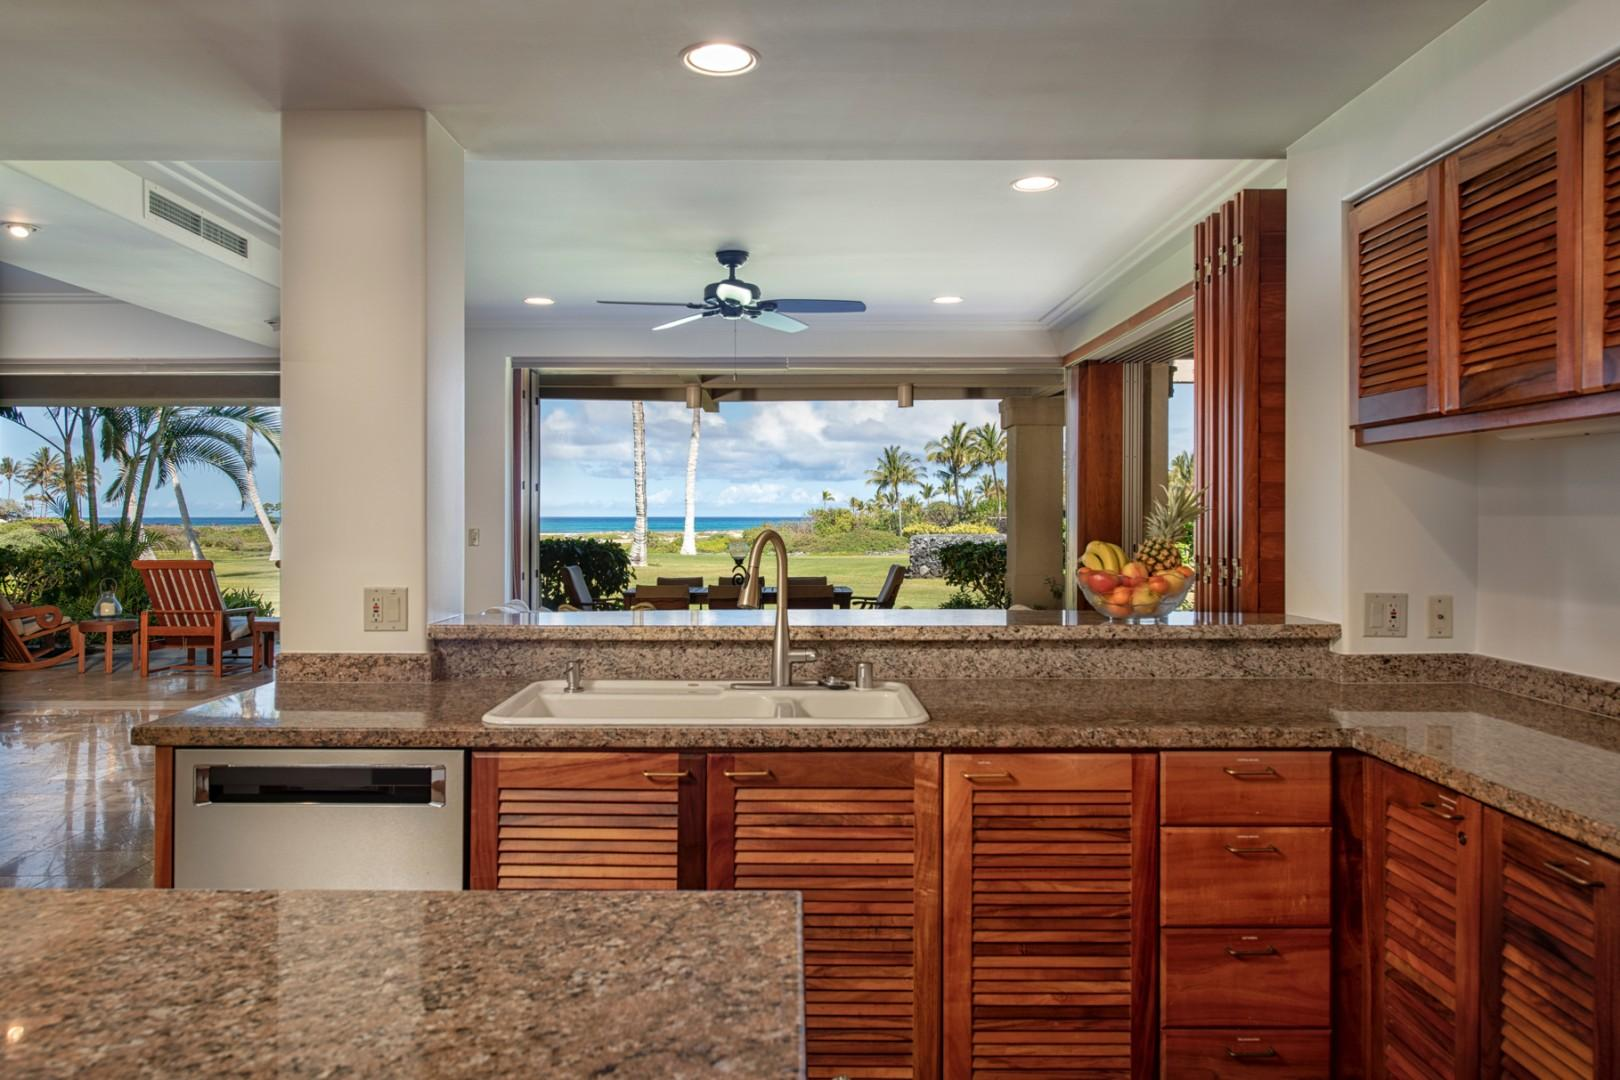 Alternate view of kitchen highlighting ocean view.